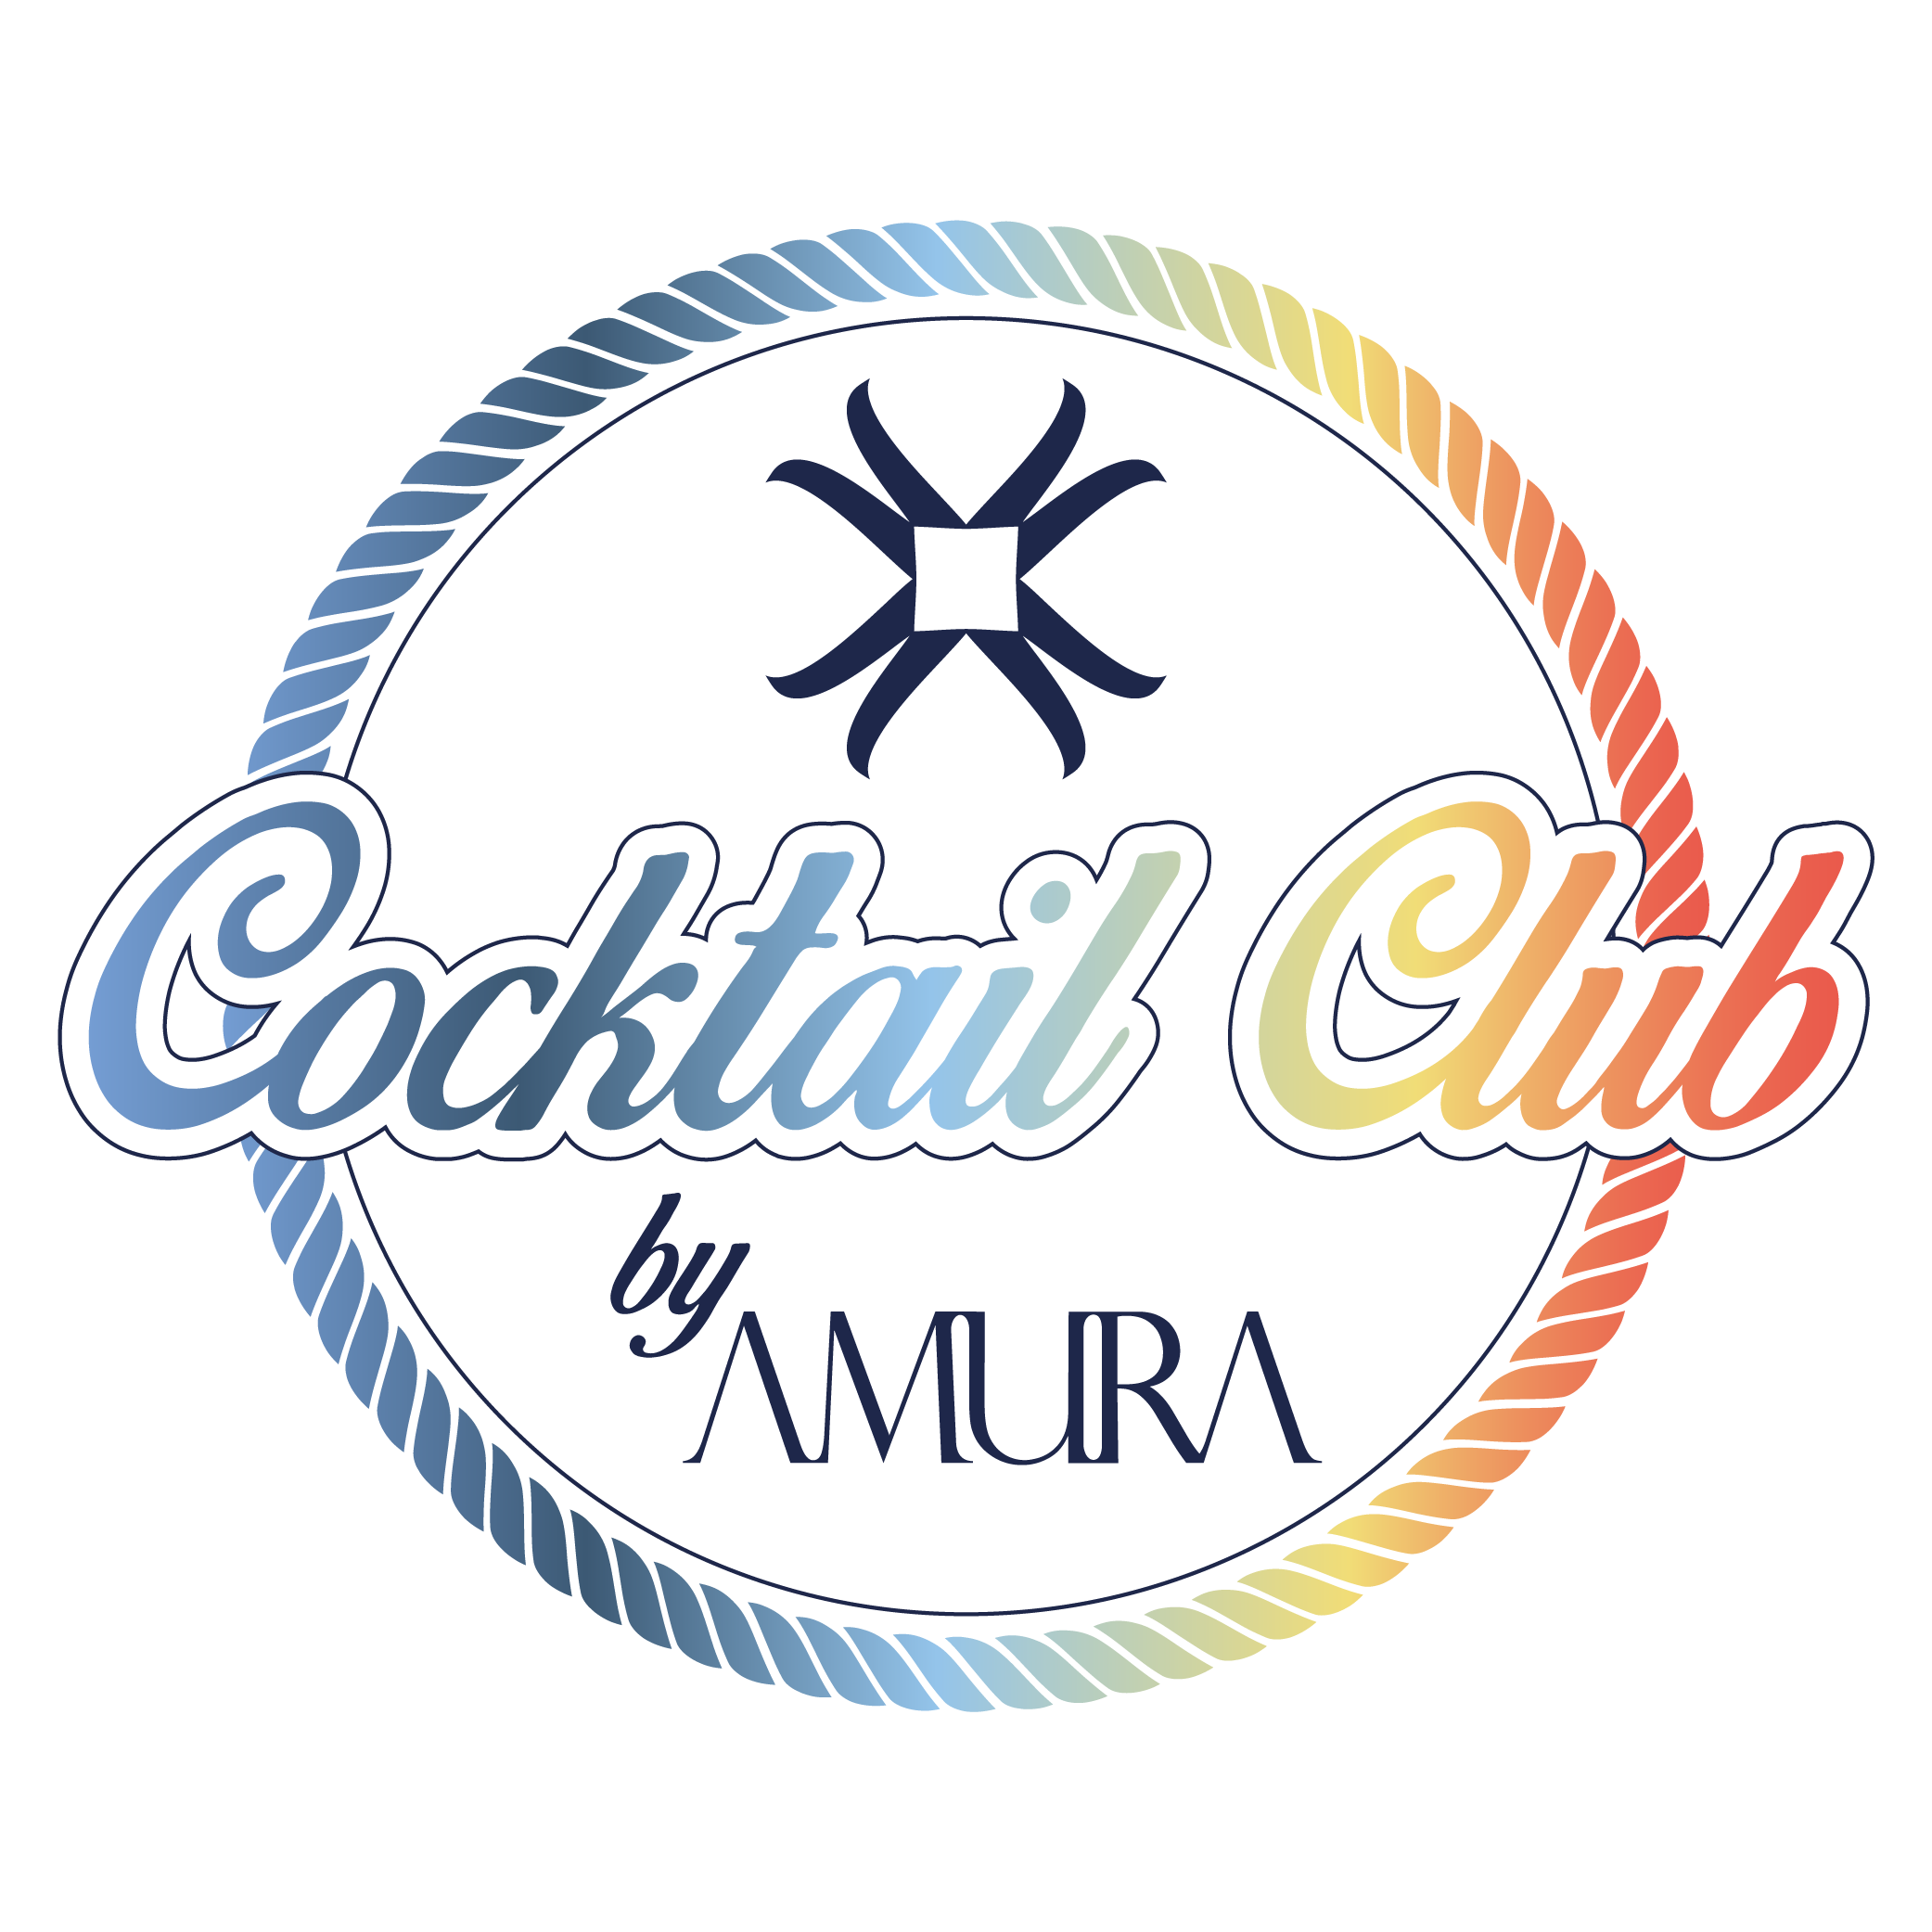 Amura Cocktail Club